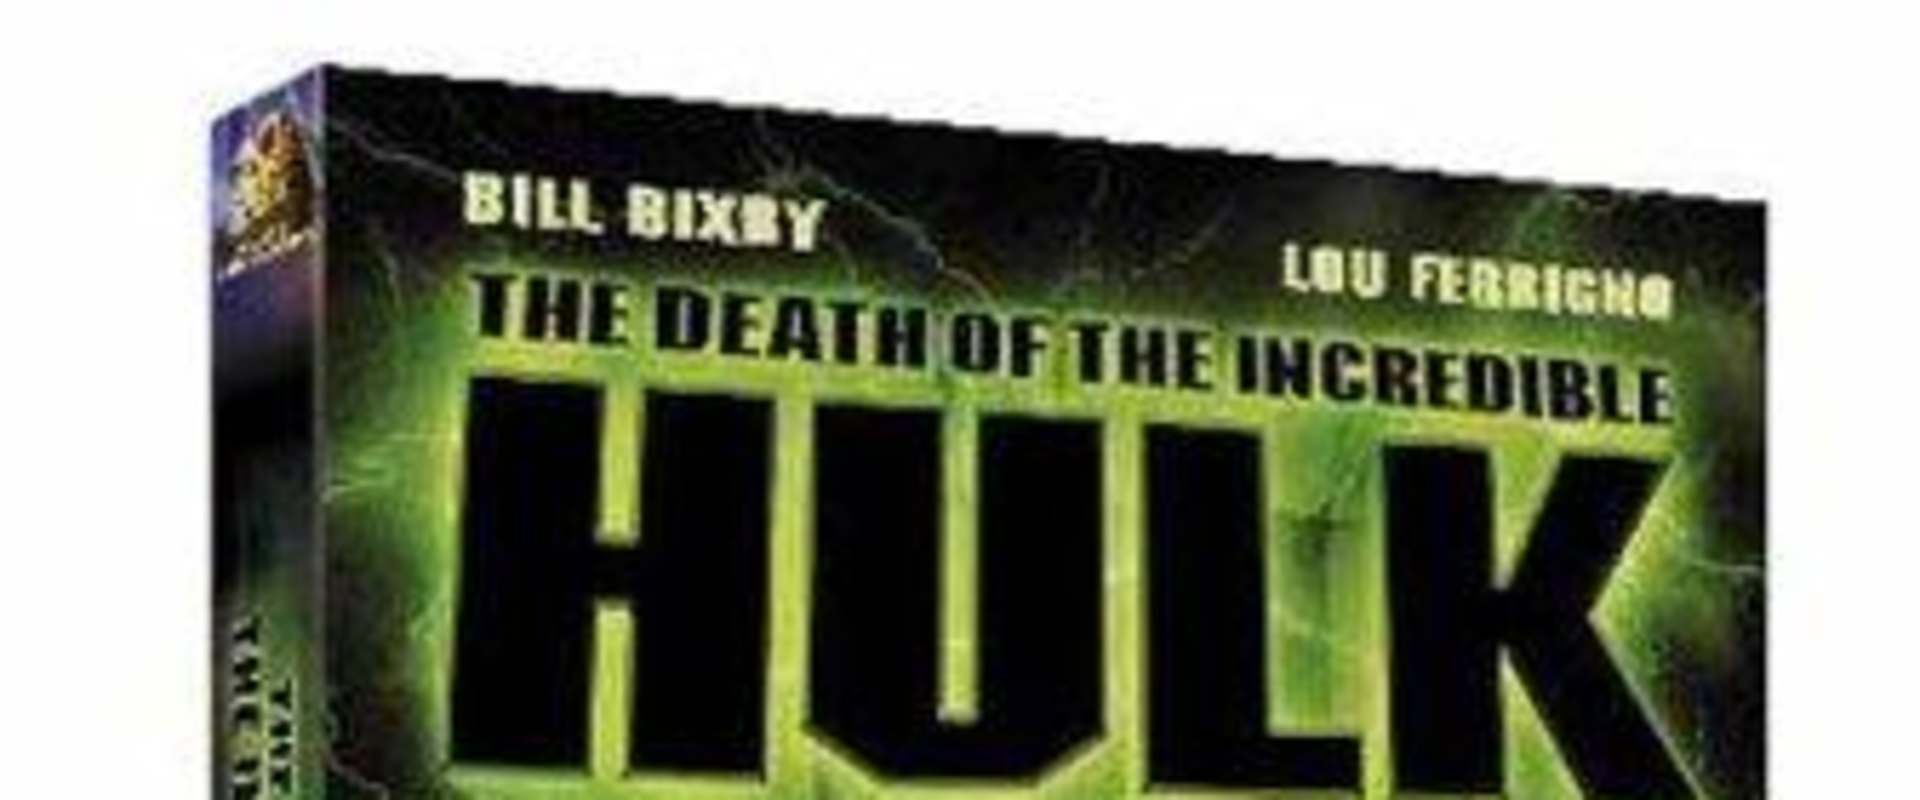 The Death of the Incredible Hulk background 1